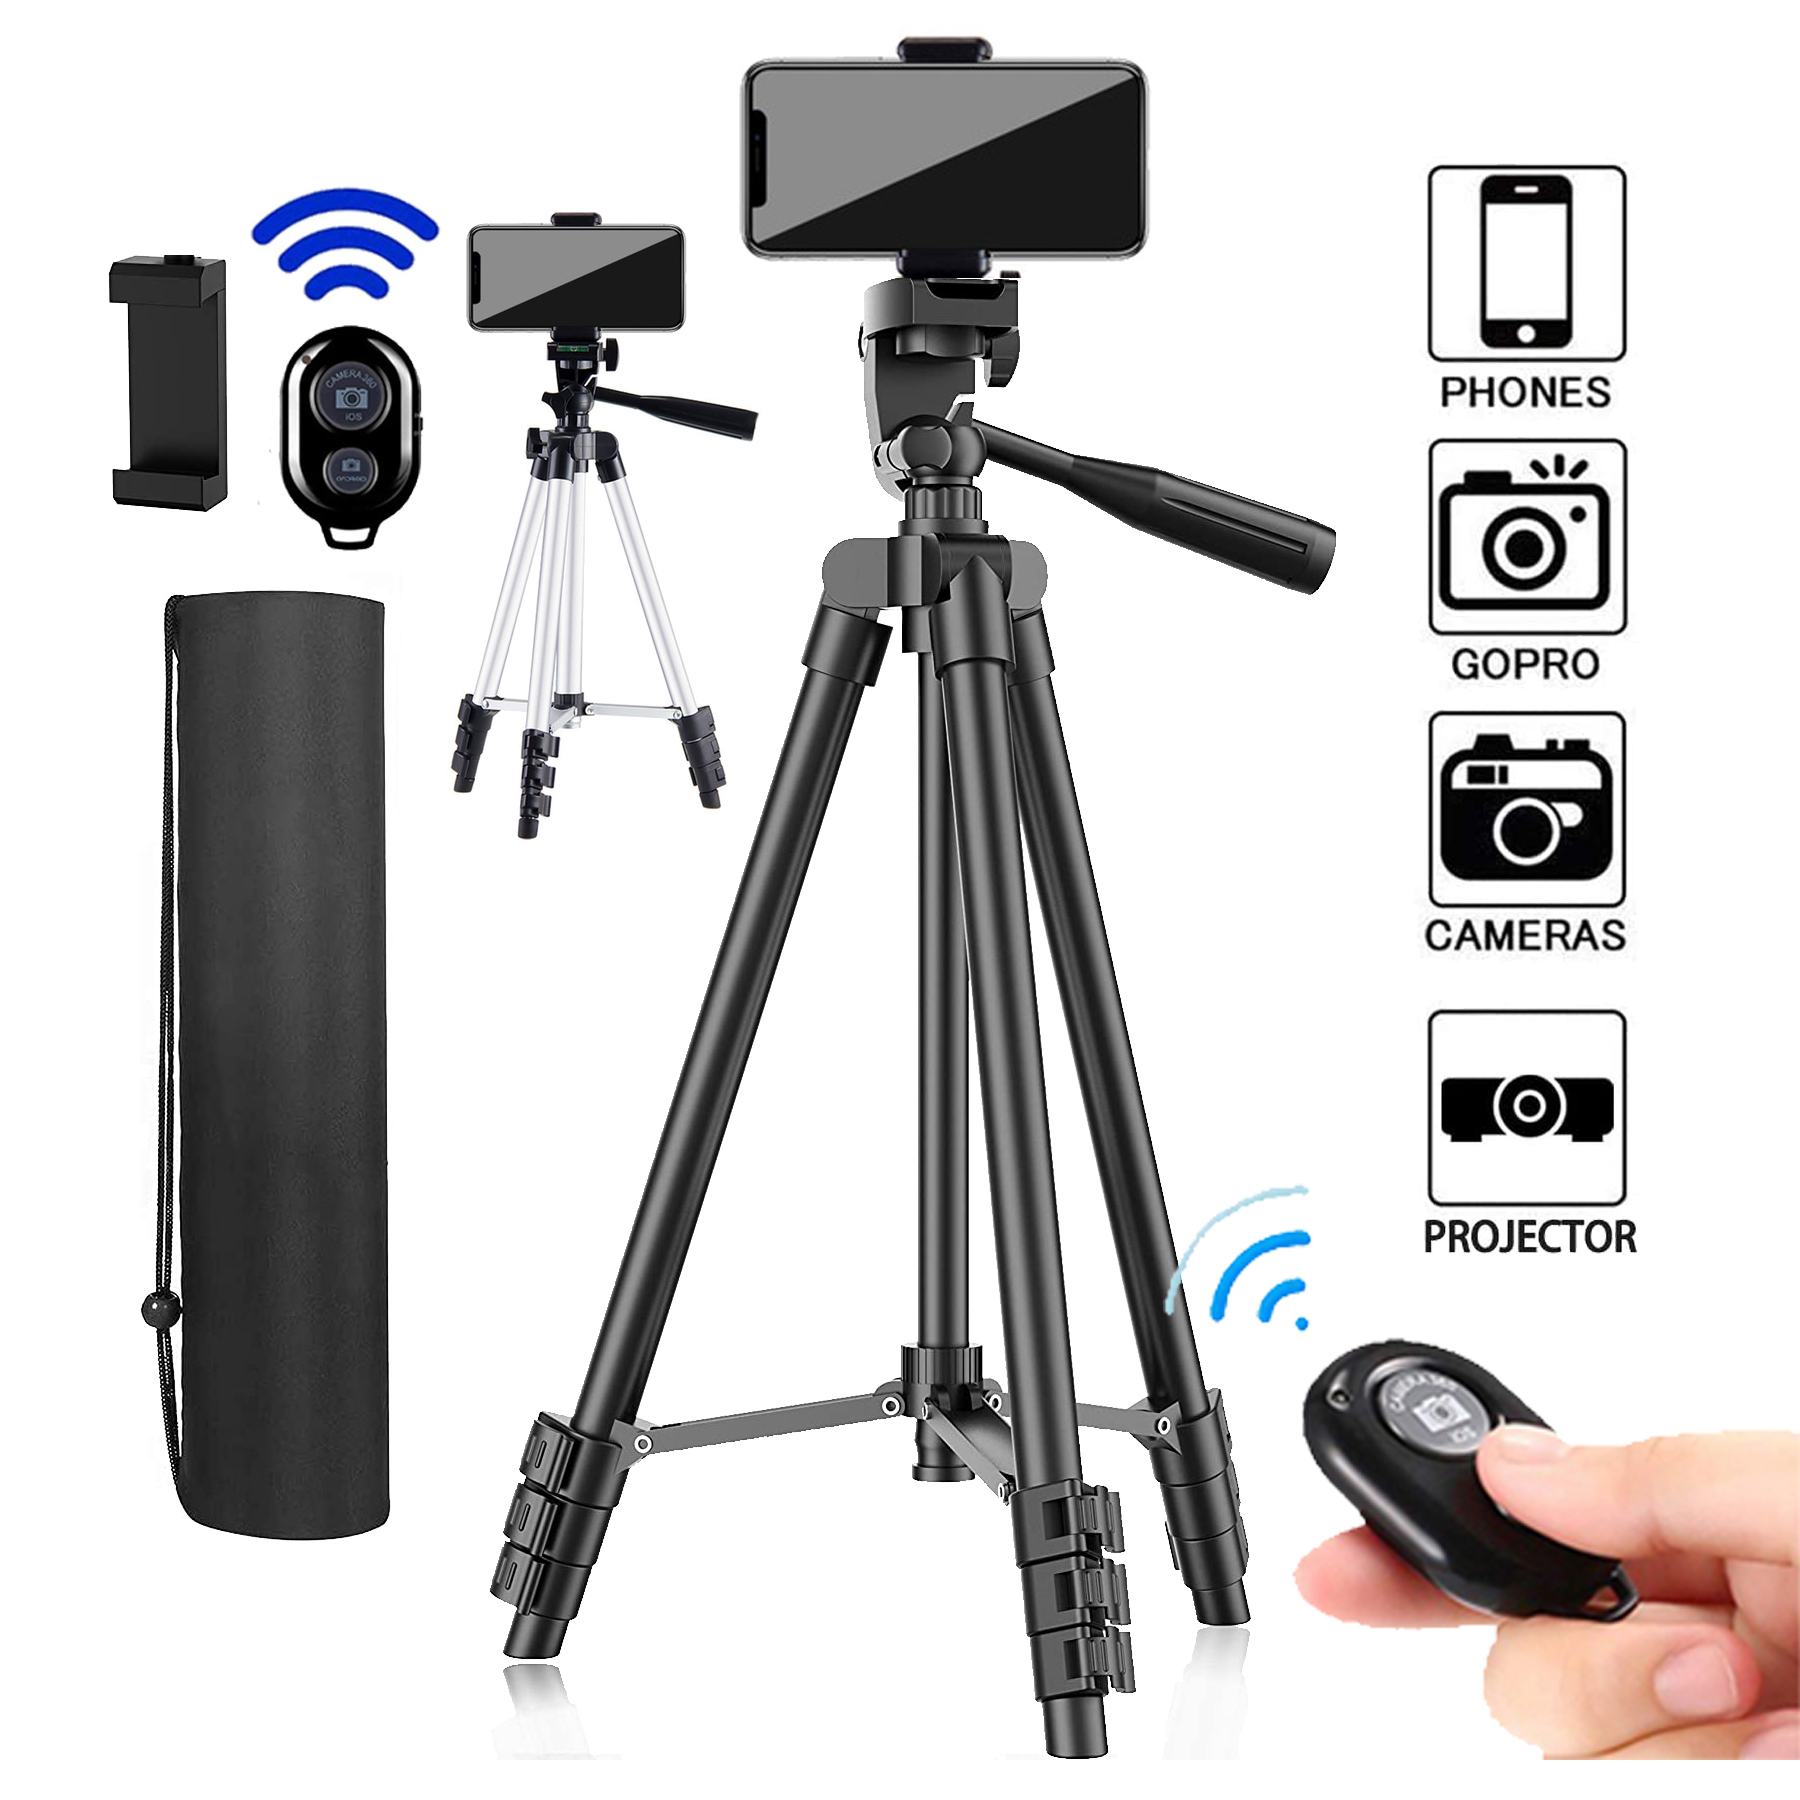 DSLR Flexible Tripod Extendable Travel Lightweight Stand Carry Bag Bluetooth Remote Cell Phone Mount Camera Gopro Live Youtube